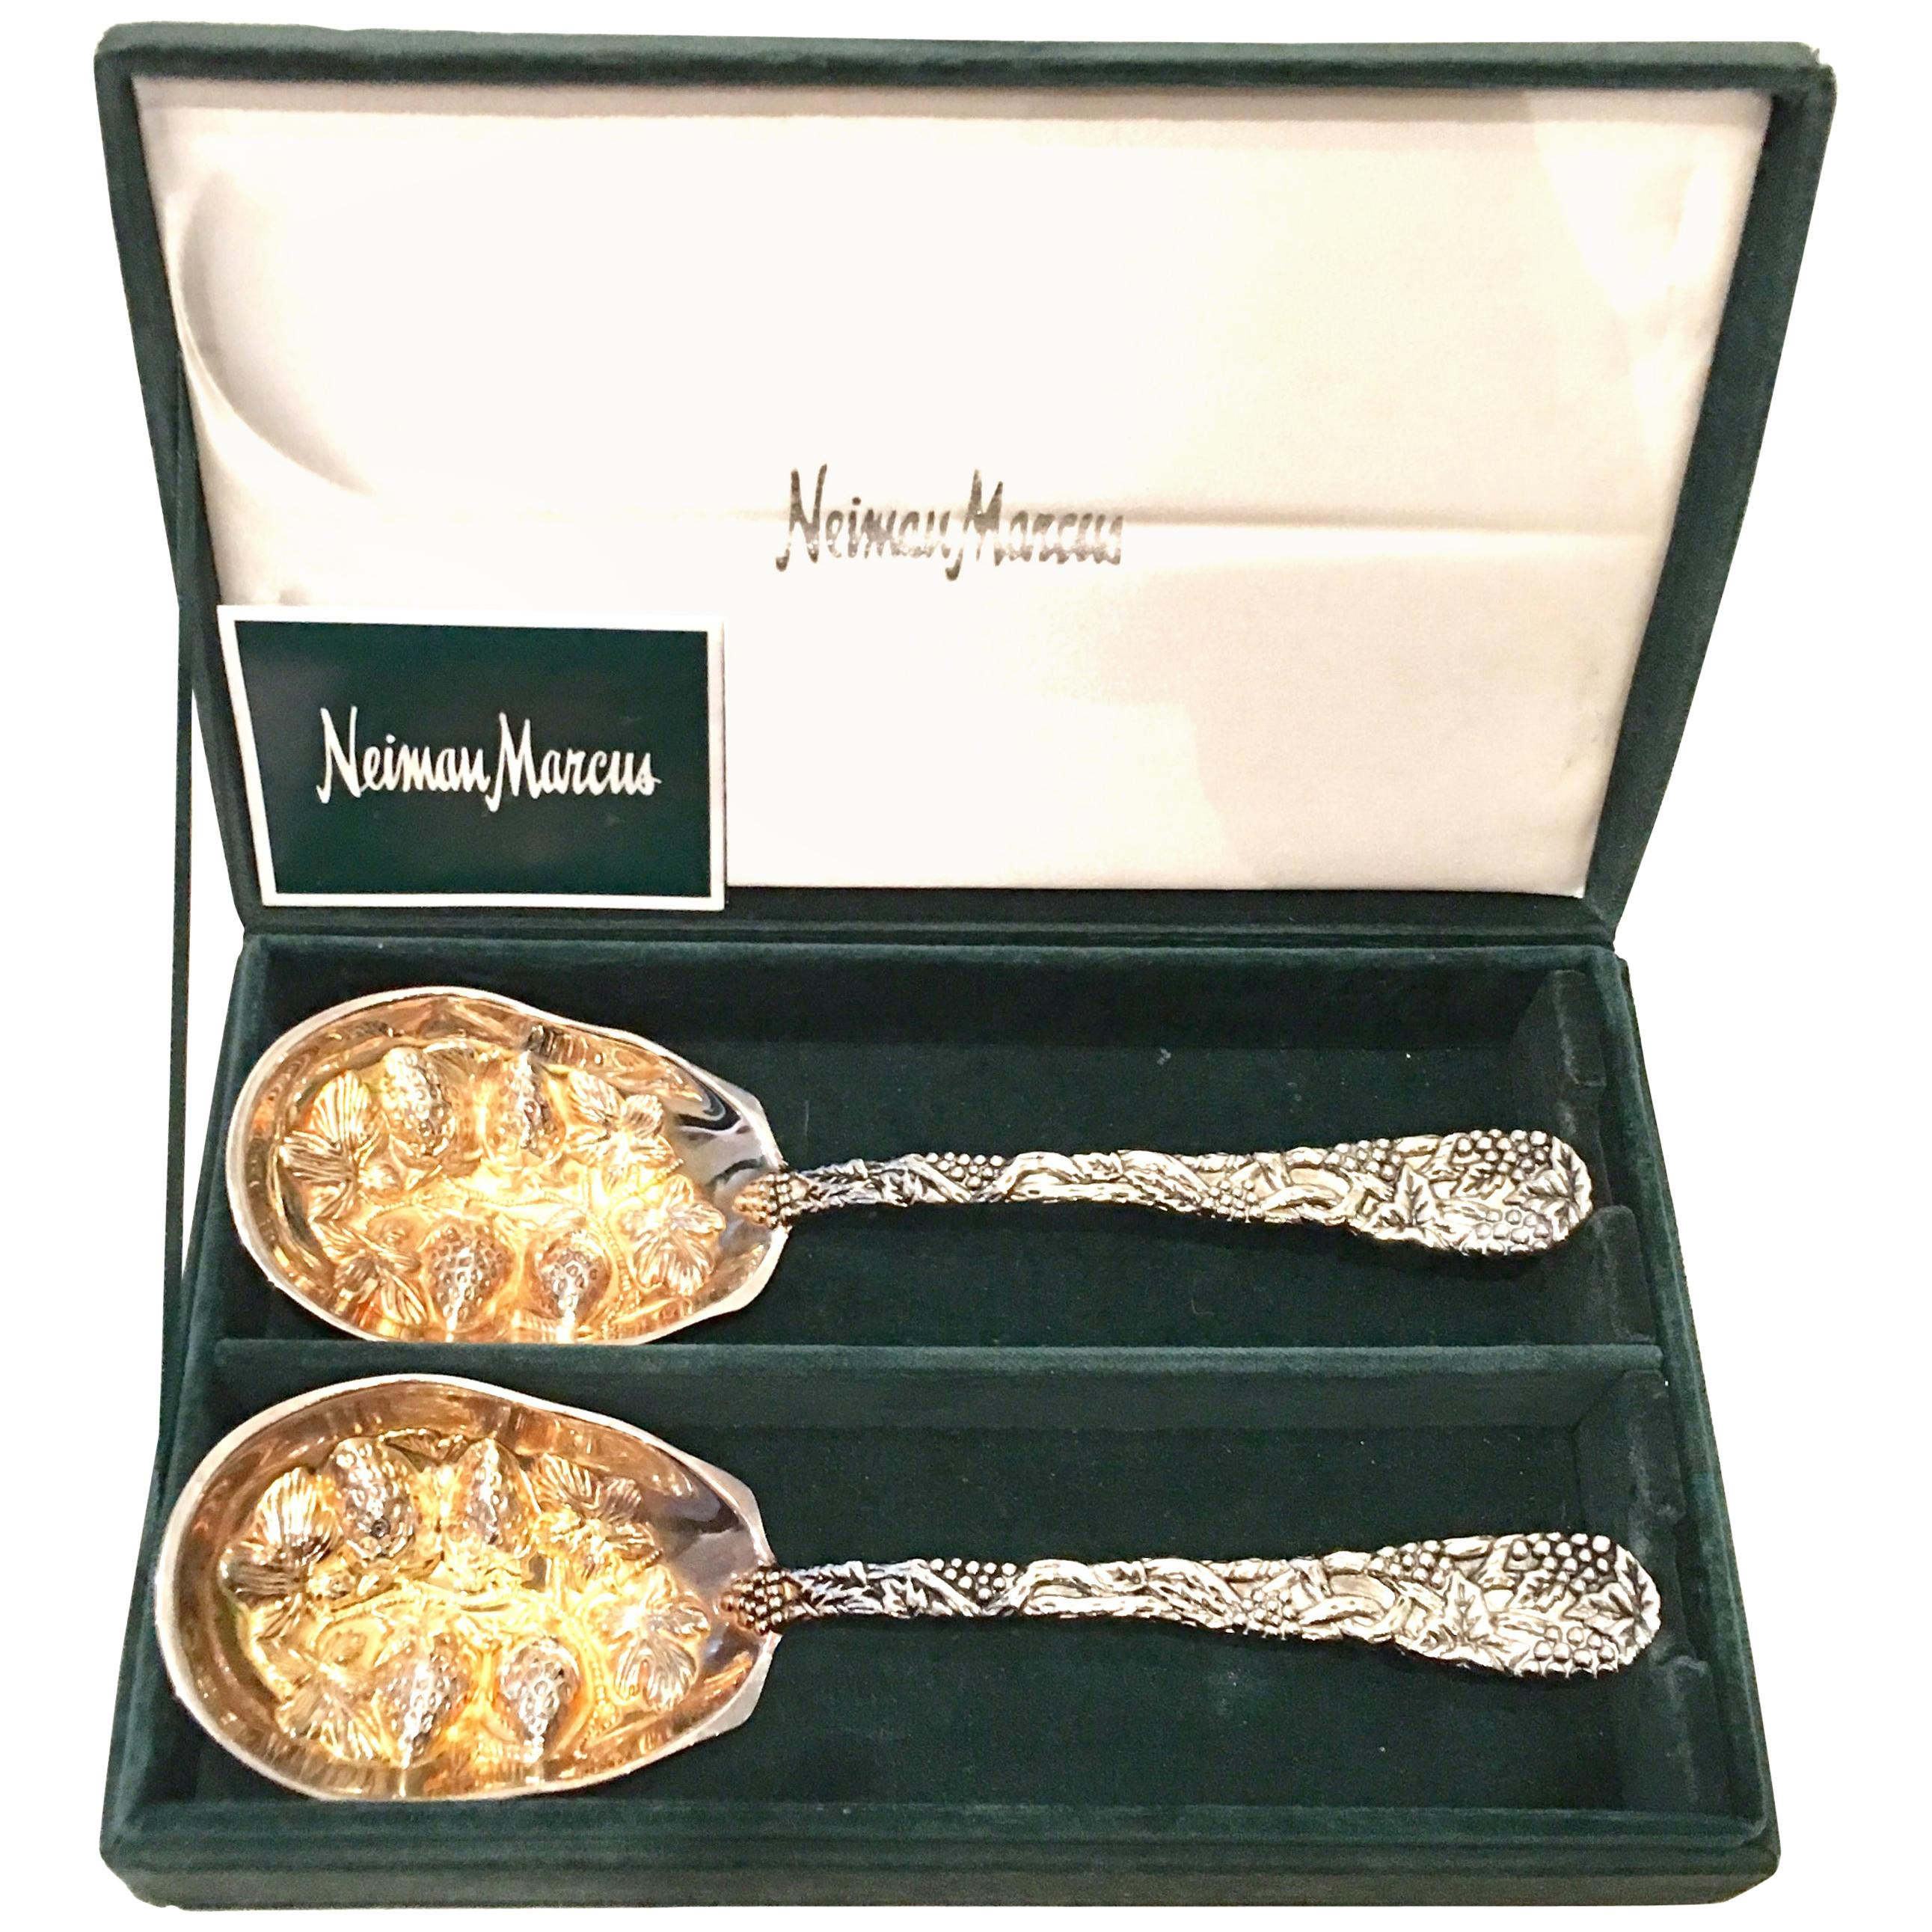 20th Century Pair of Godinger for Neiman Marcus Silver Plate Serving Spoons S/2